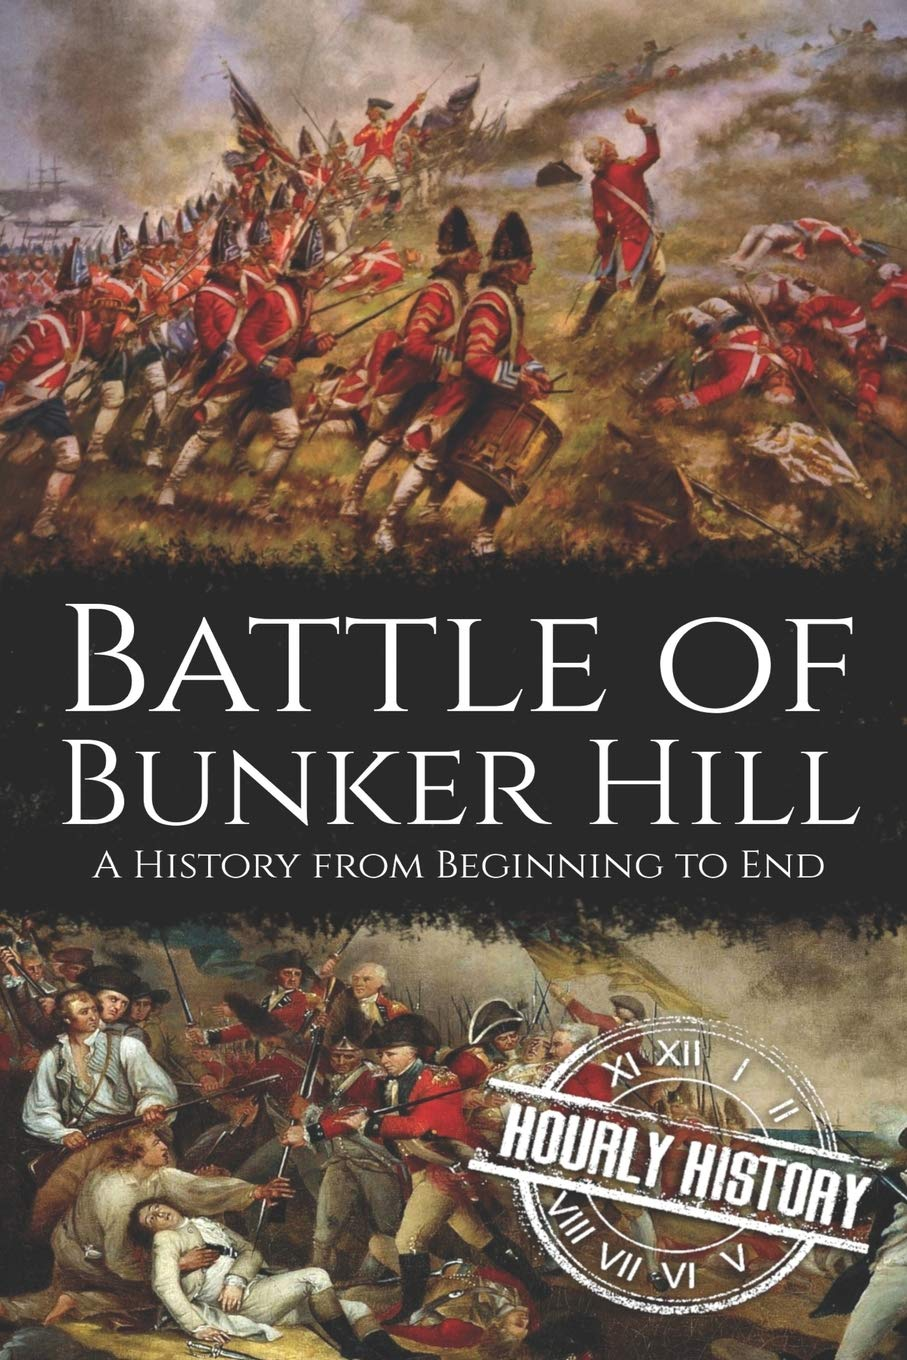 Battle Of Bunker Hill A History From Beginning To End American Revolultion Battles History Hourly 9781659991680 Amazon Com Books